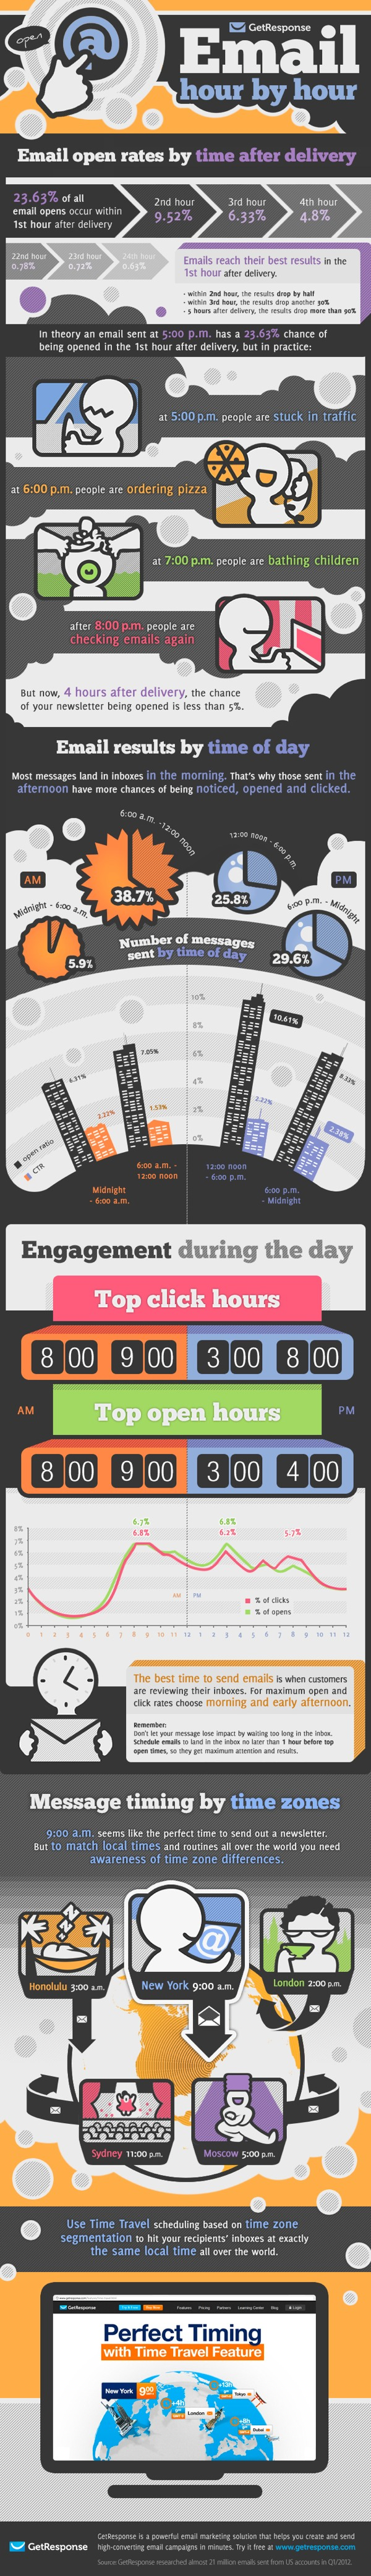 getresponse infographic best time send email